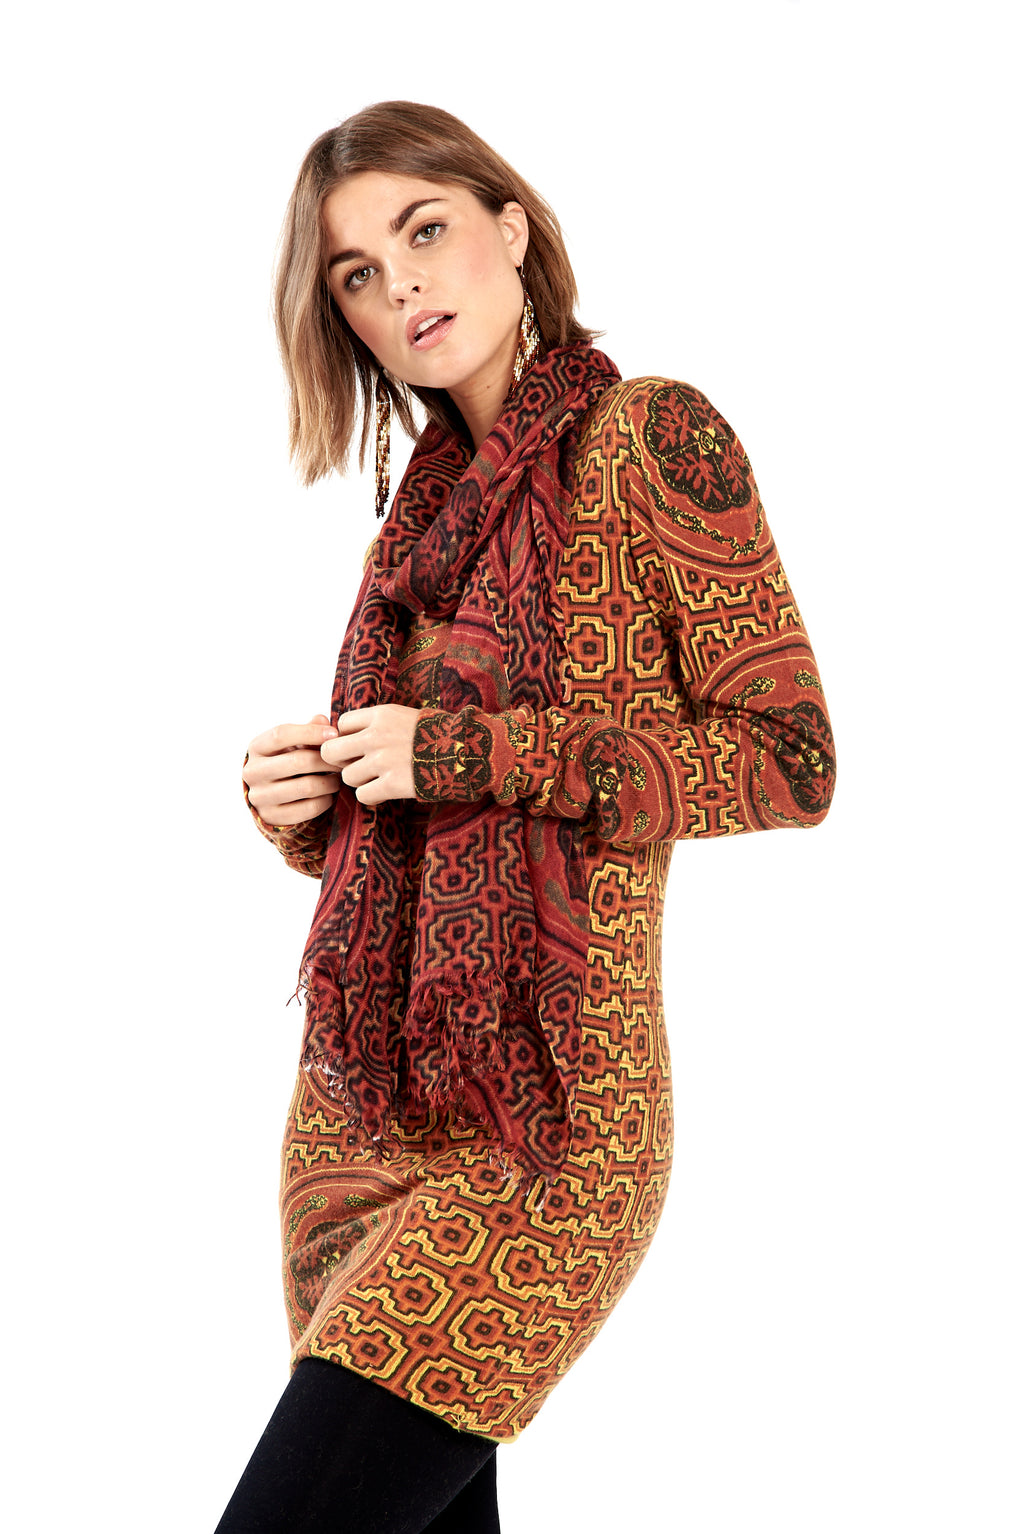 Shipibo Inspired Cashmere Fitted Jumper Dress Burgundy/Orange No Panel - MUDRA